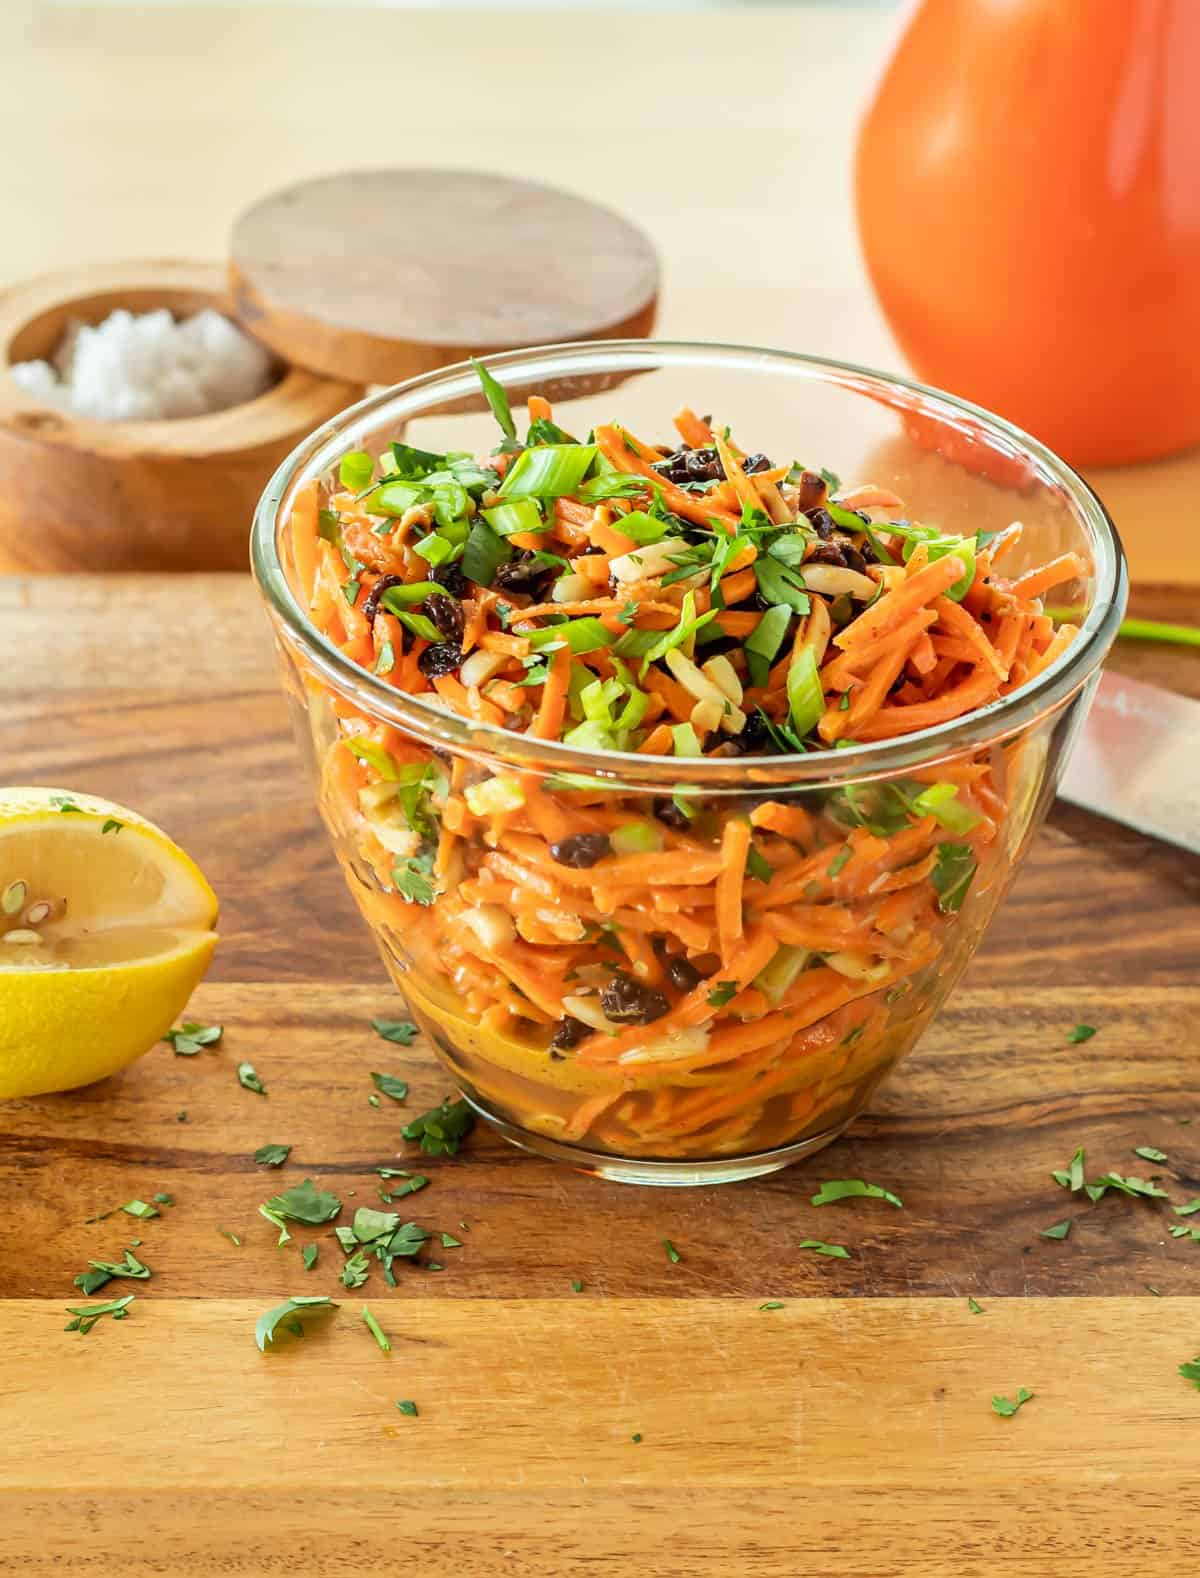 A clear glass bowl of Moroccan Carrot Salad with Lemon Dressing, a wood salt box and bottle of olive oil...